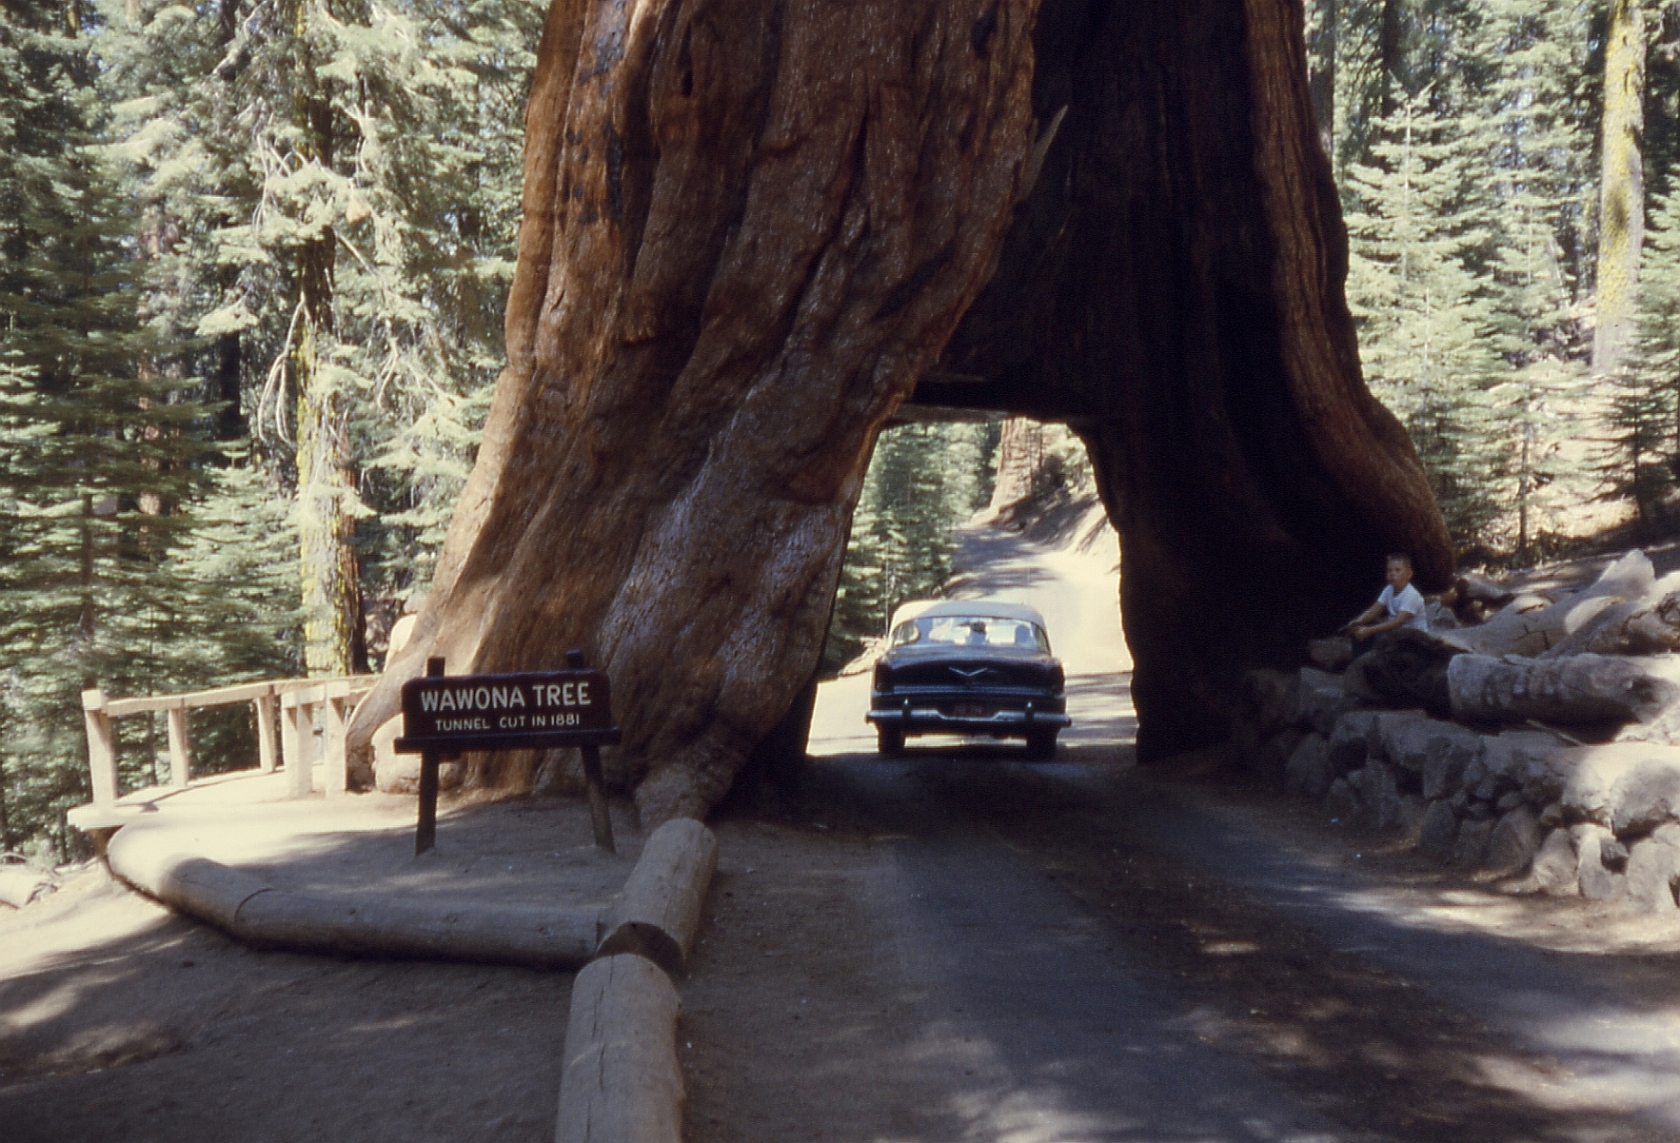 Tunnel tree in Yosemite is an age-old tradition in this national park.